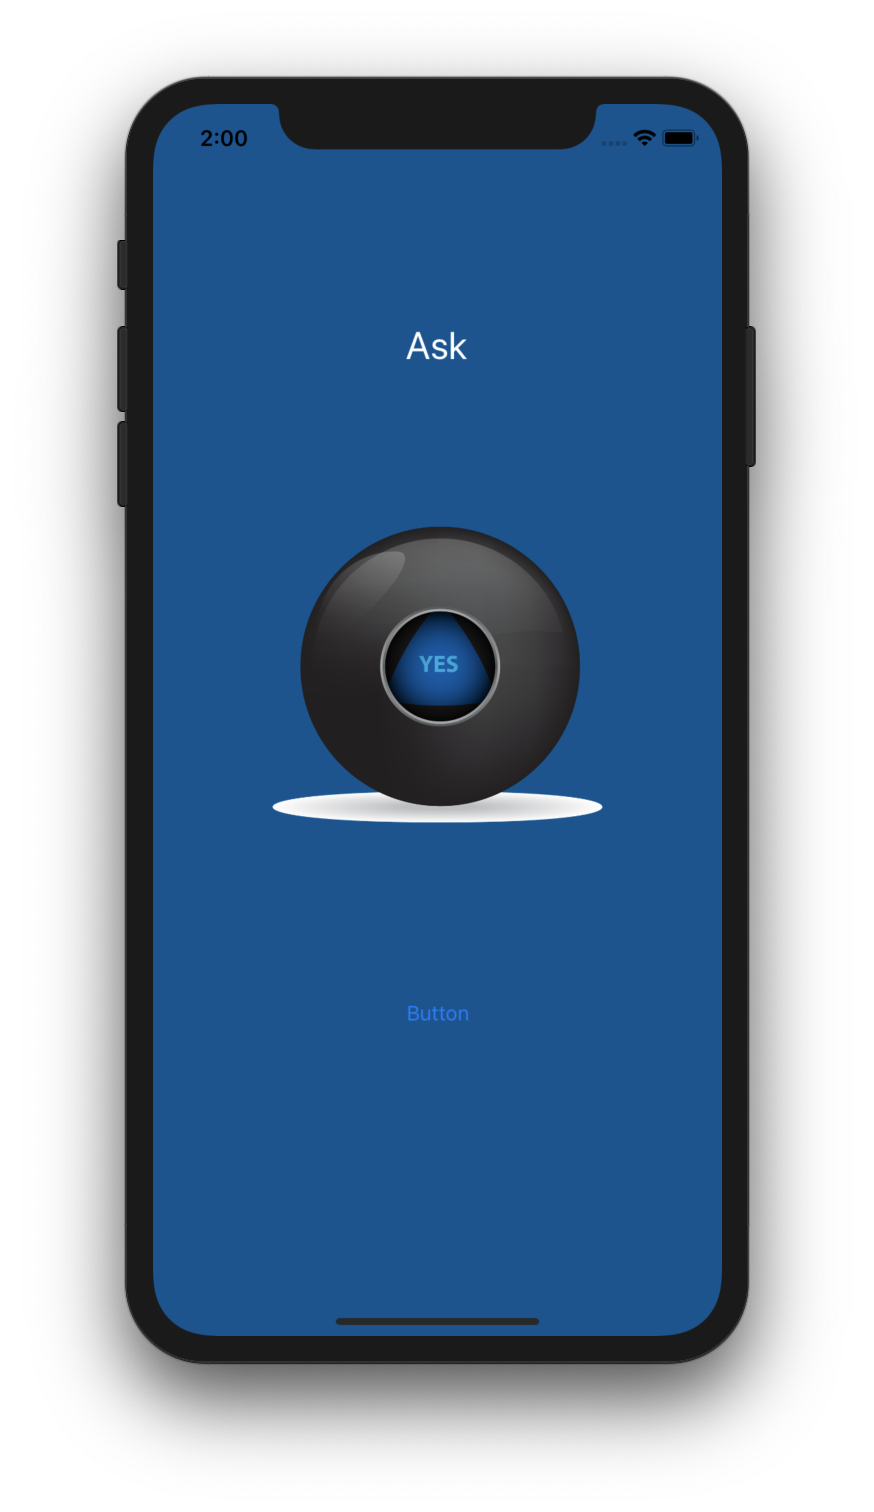 Magic 8 Ball - A single page application that gives answers when you shake the device or pres the shake button